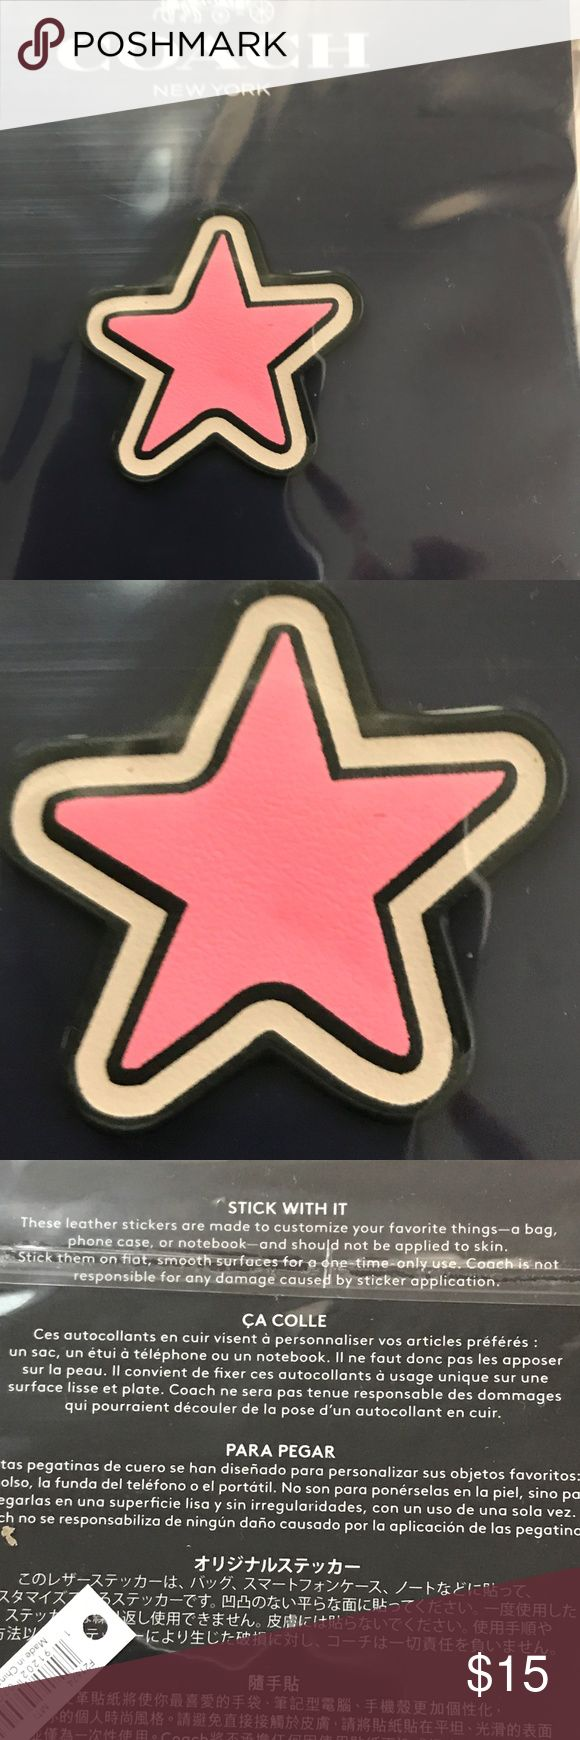 "Coach ""Star"" Emoji Leather Sticker This leather sticker is are made to customize your favorite purse, phone case, or even a notebook. Coach Accessories"